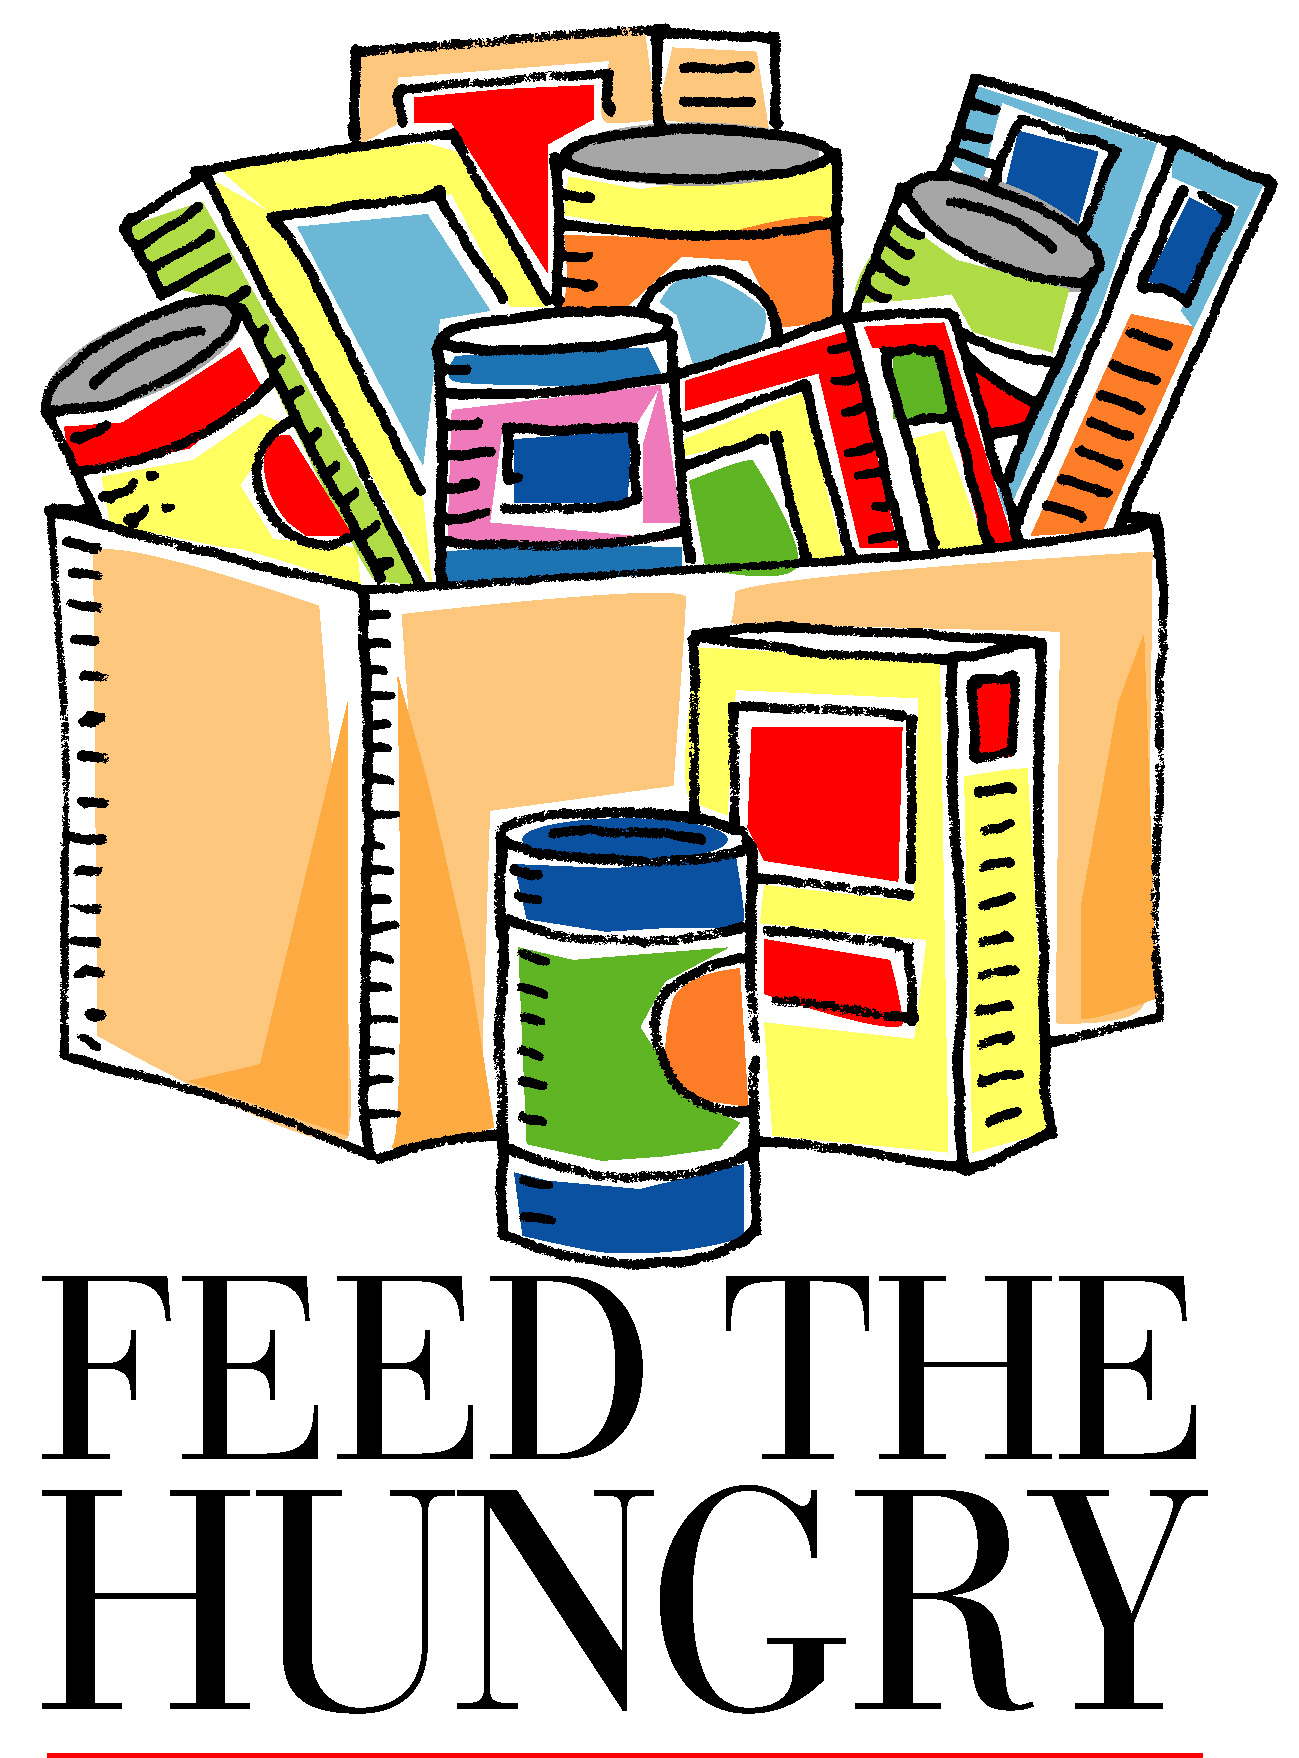 Clipart food bank image free download Food Bank Clipart - Clipart Kid image free download